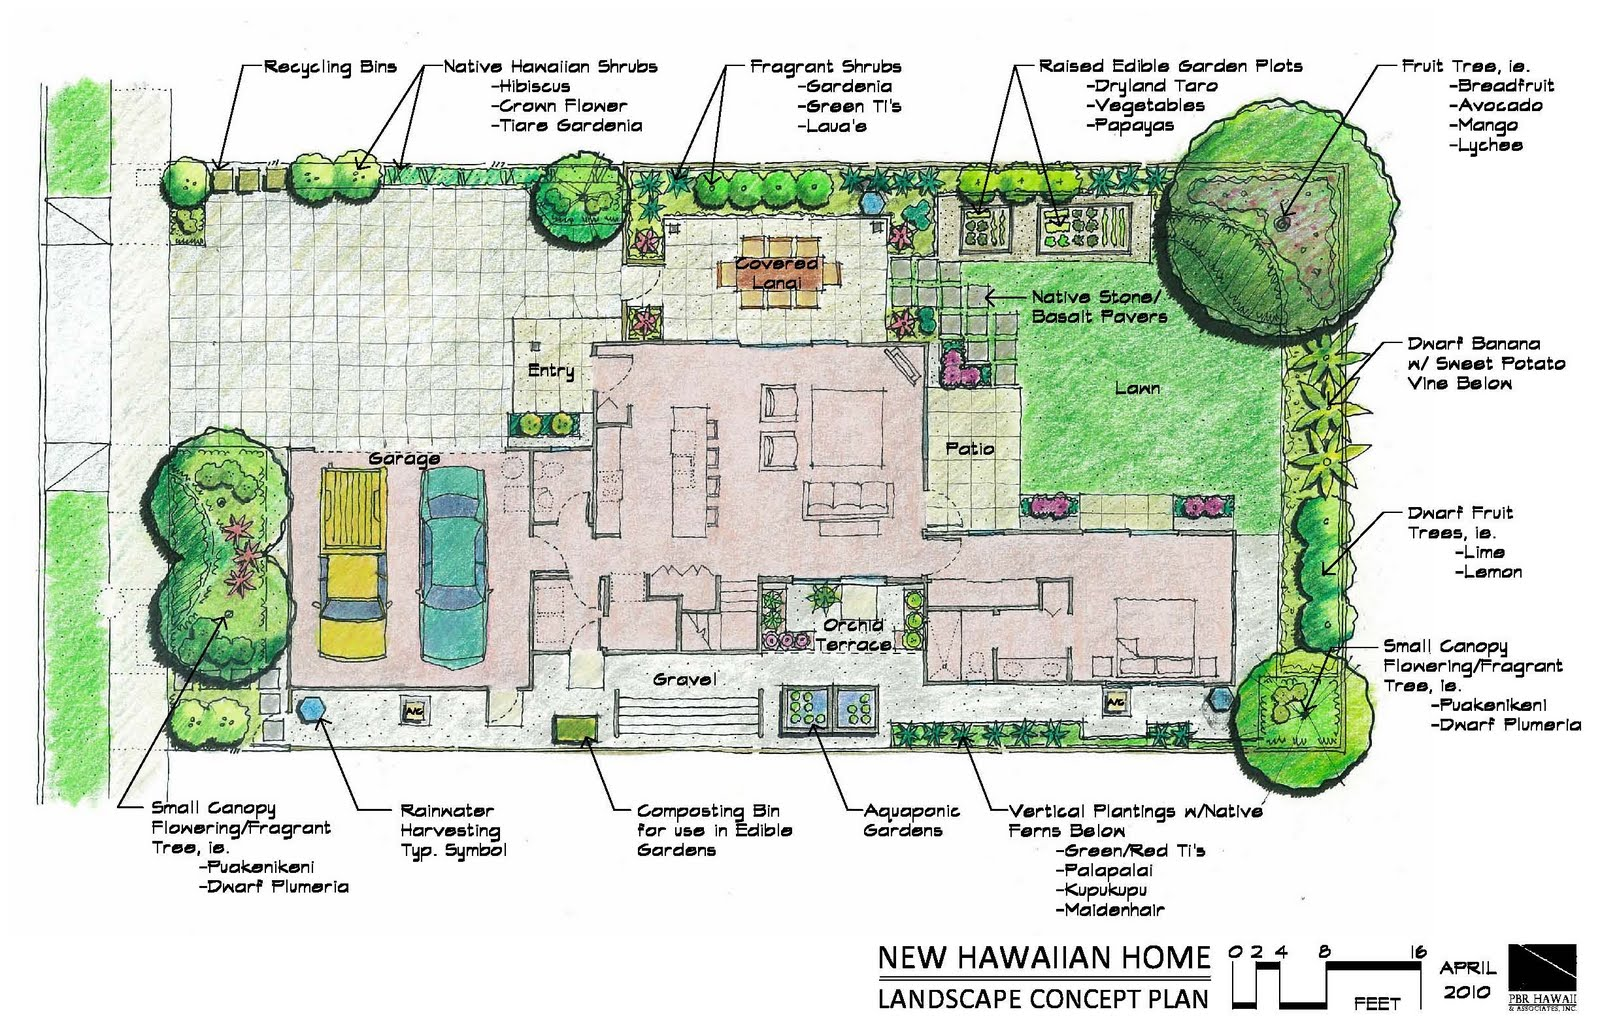 House Landscape Plan Of New Hawaiian Home Nhh Landscape Plan